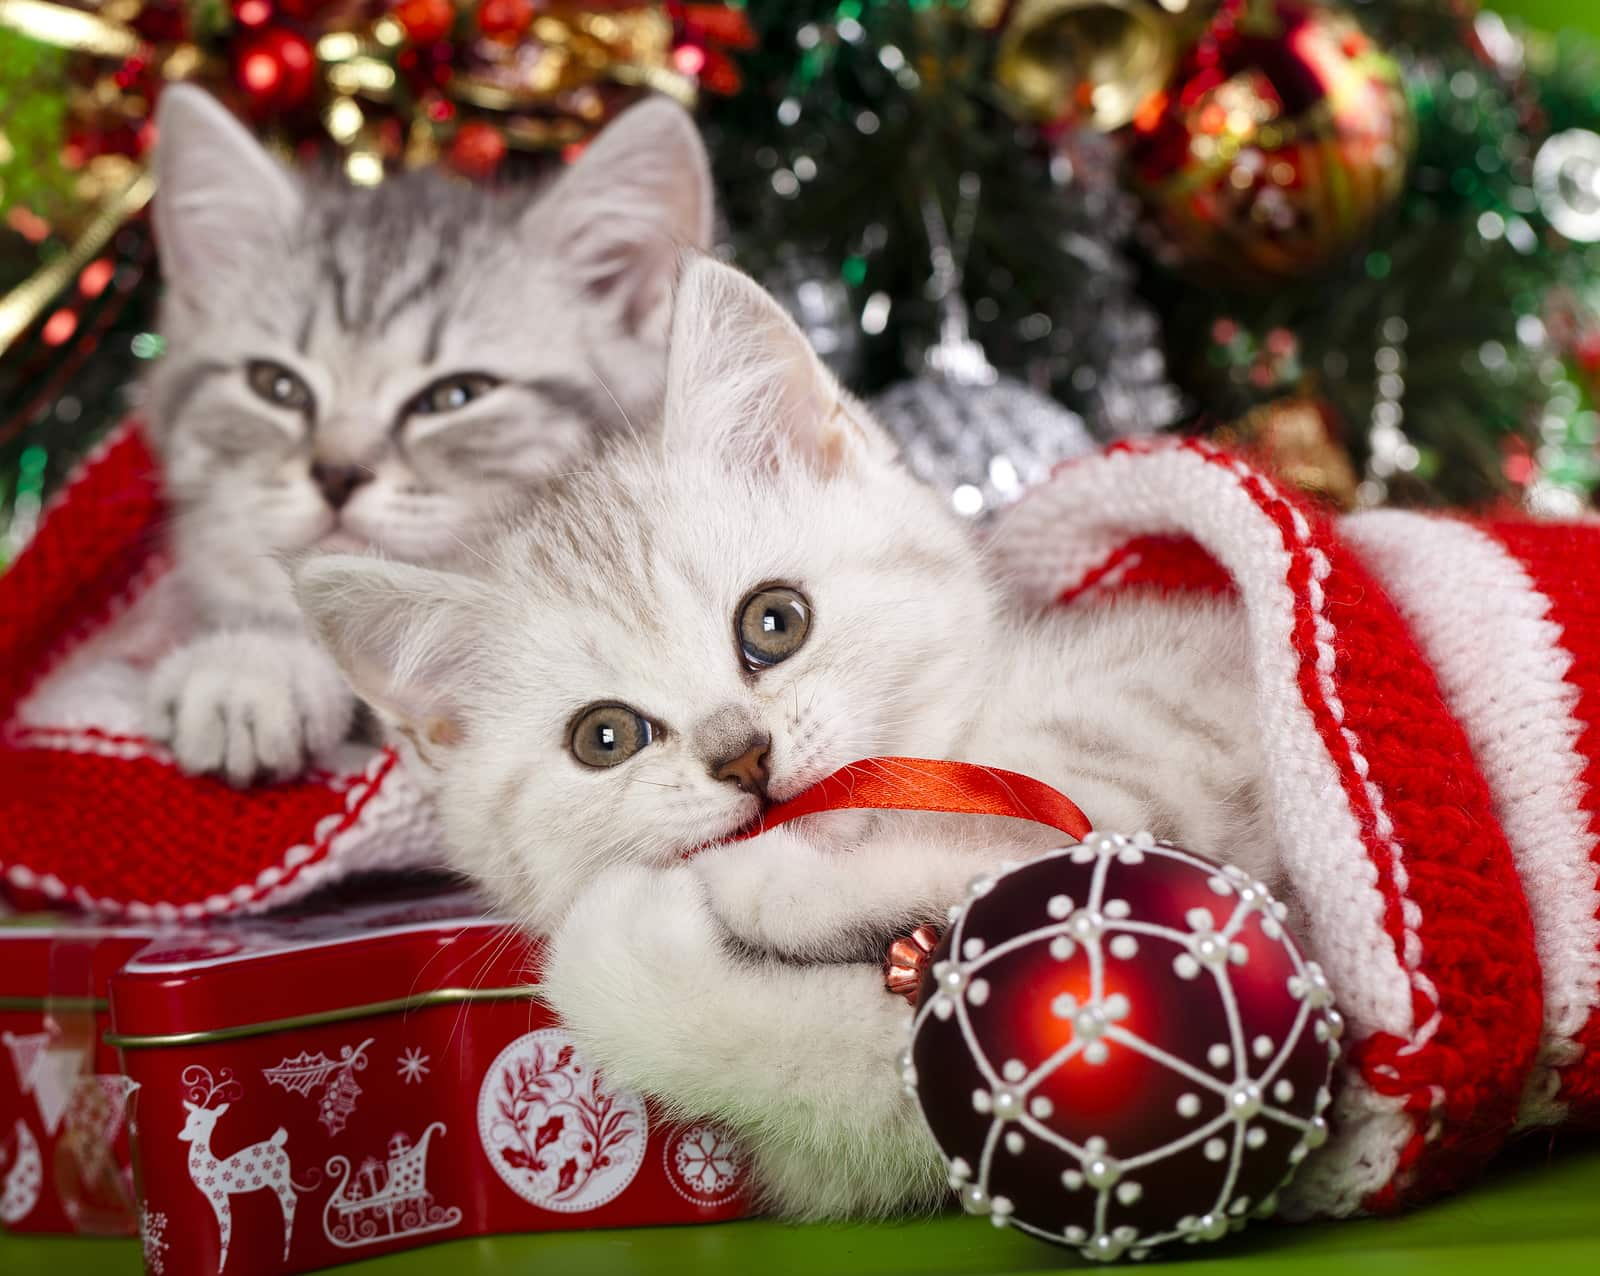 Gray and white kitten beneath Christmas ree in stockings.